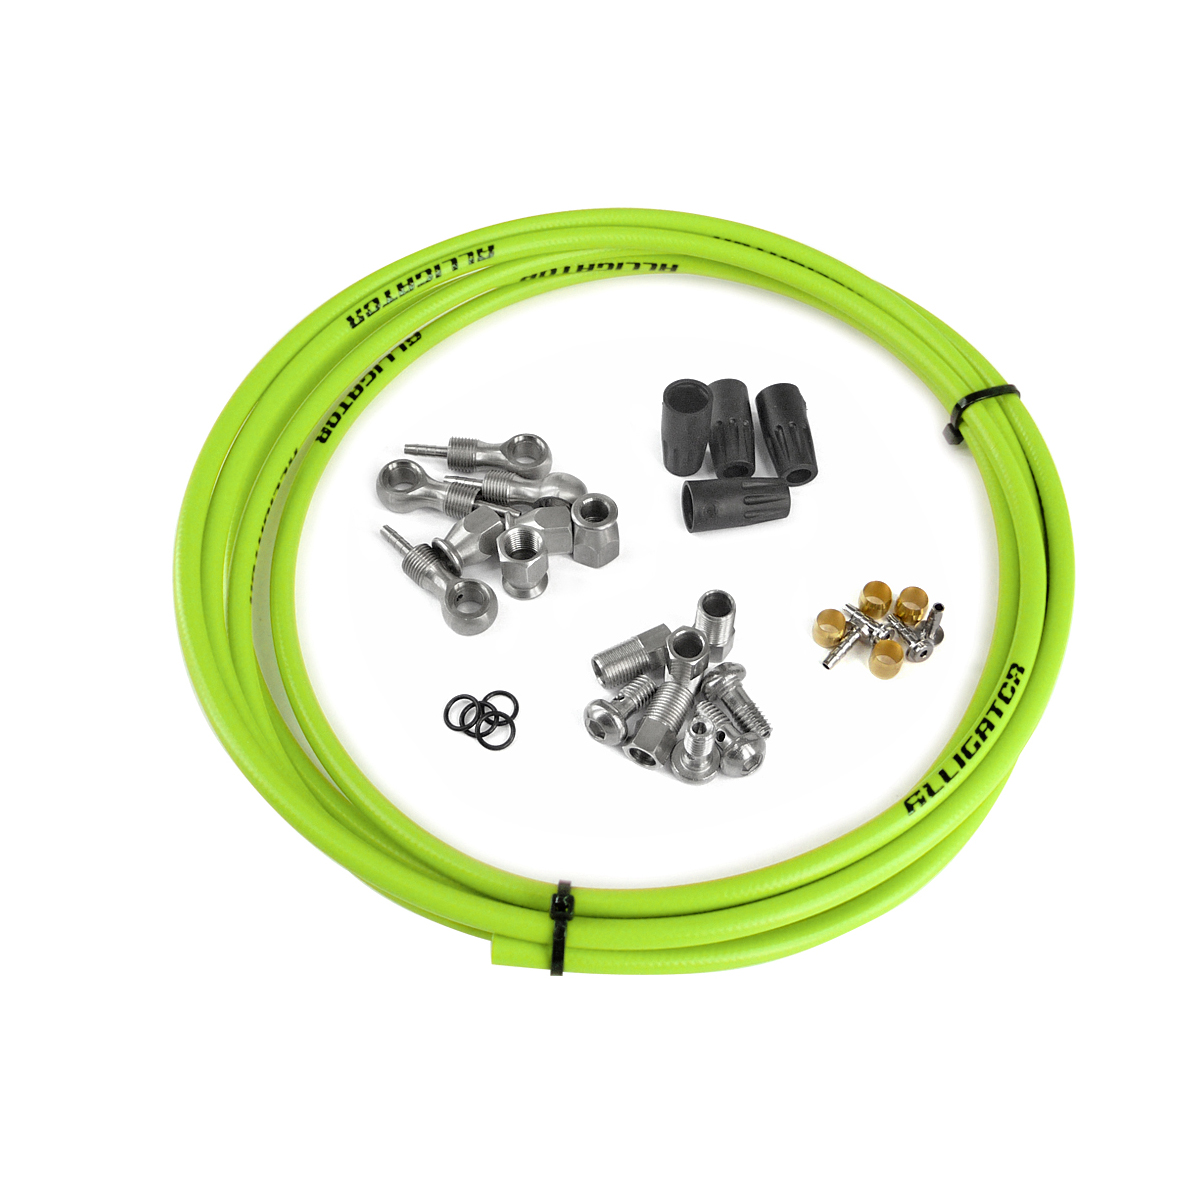 Kit complet durite frein hydraulique universel vert